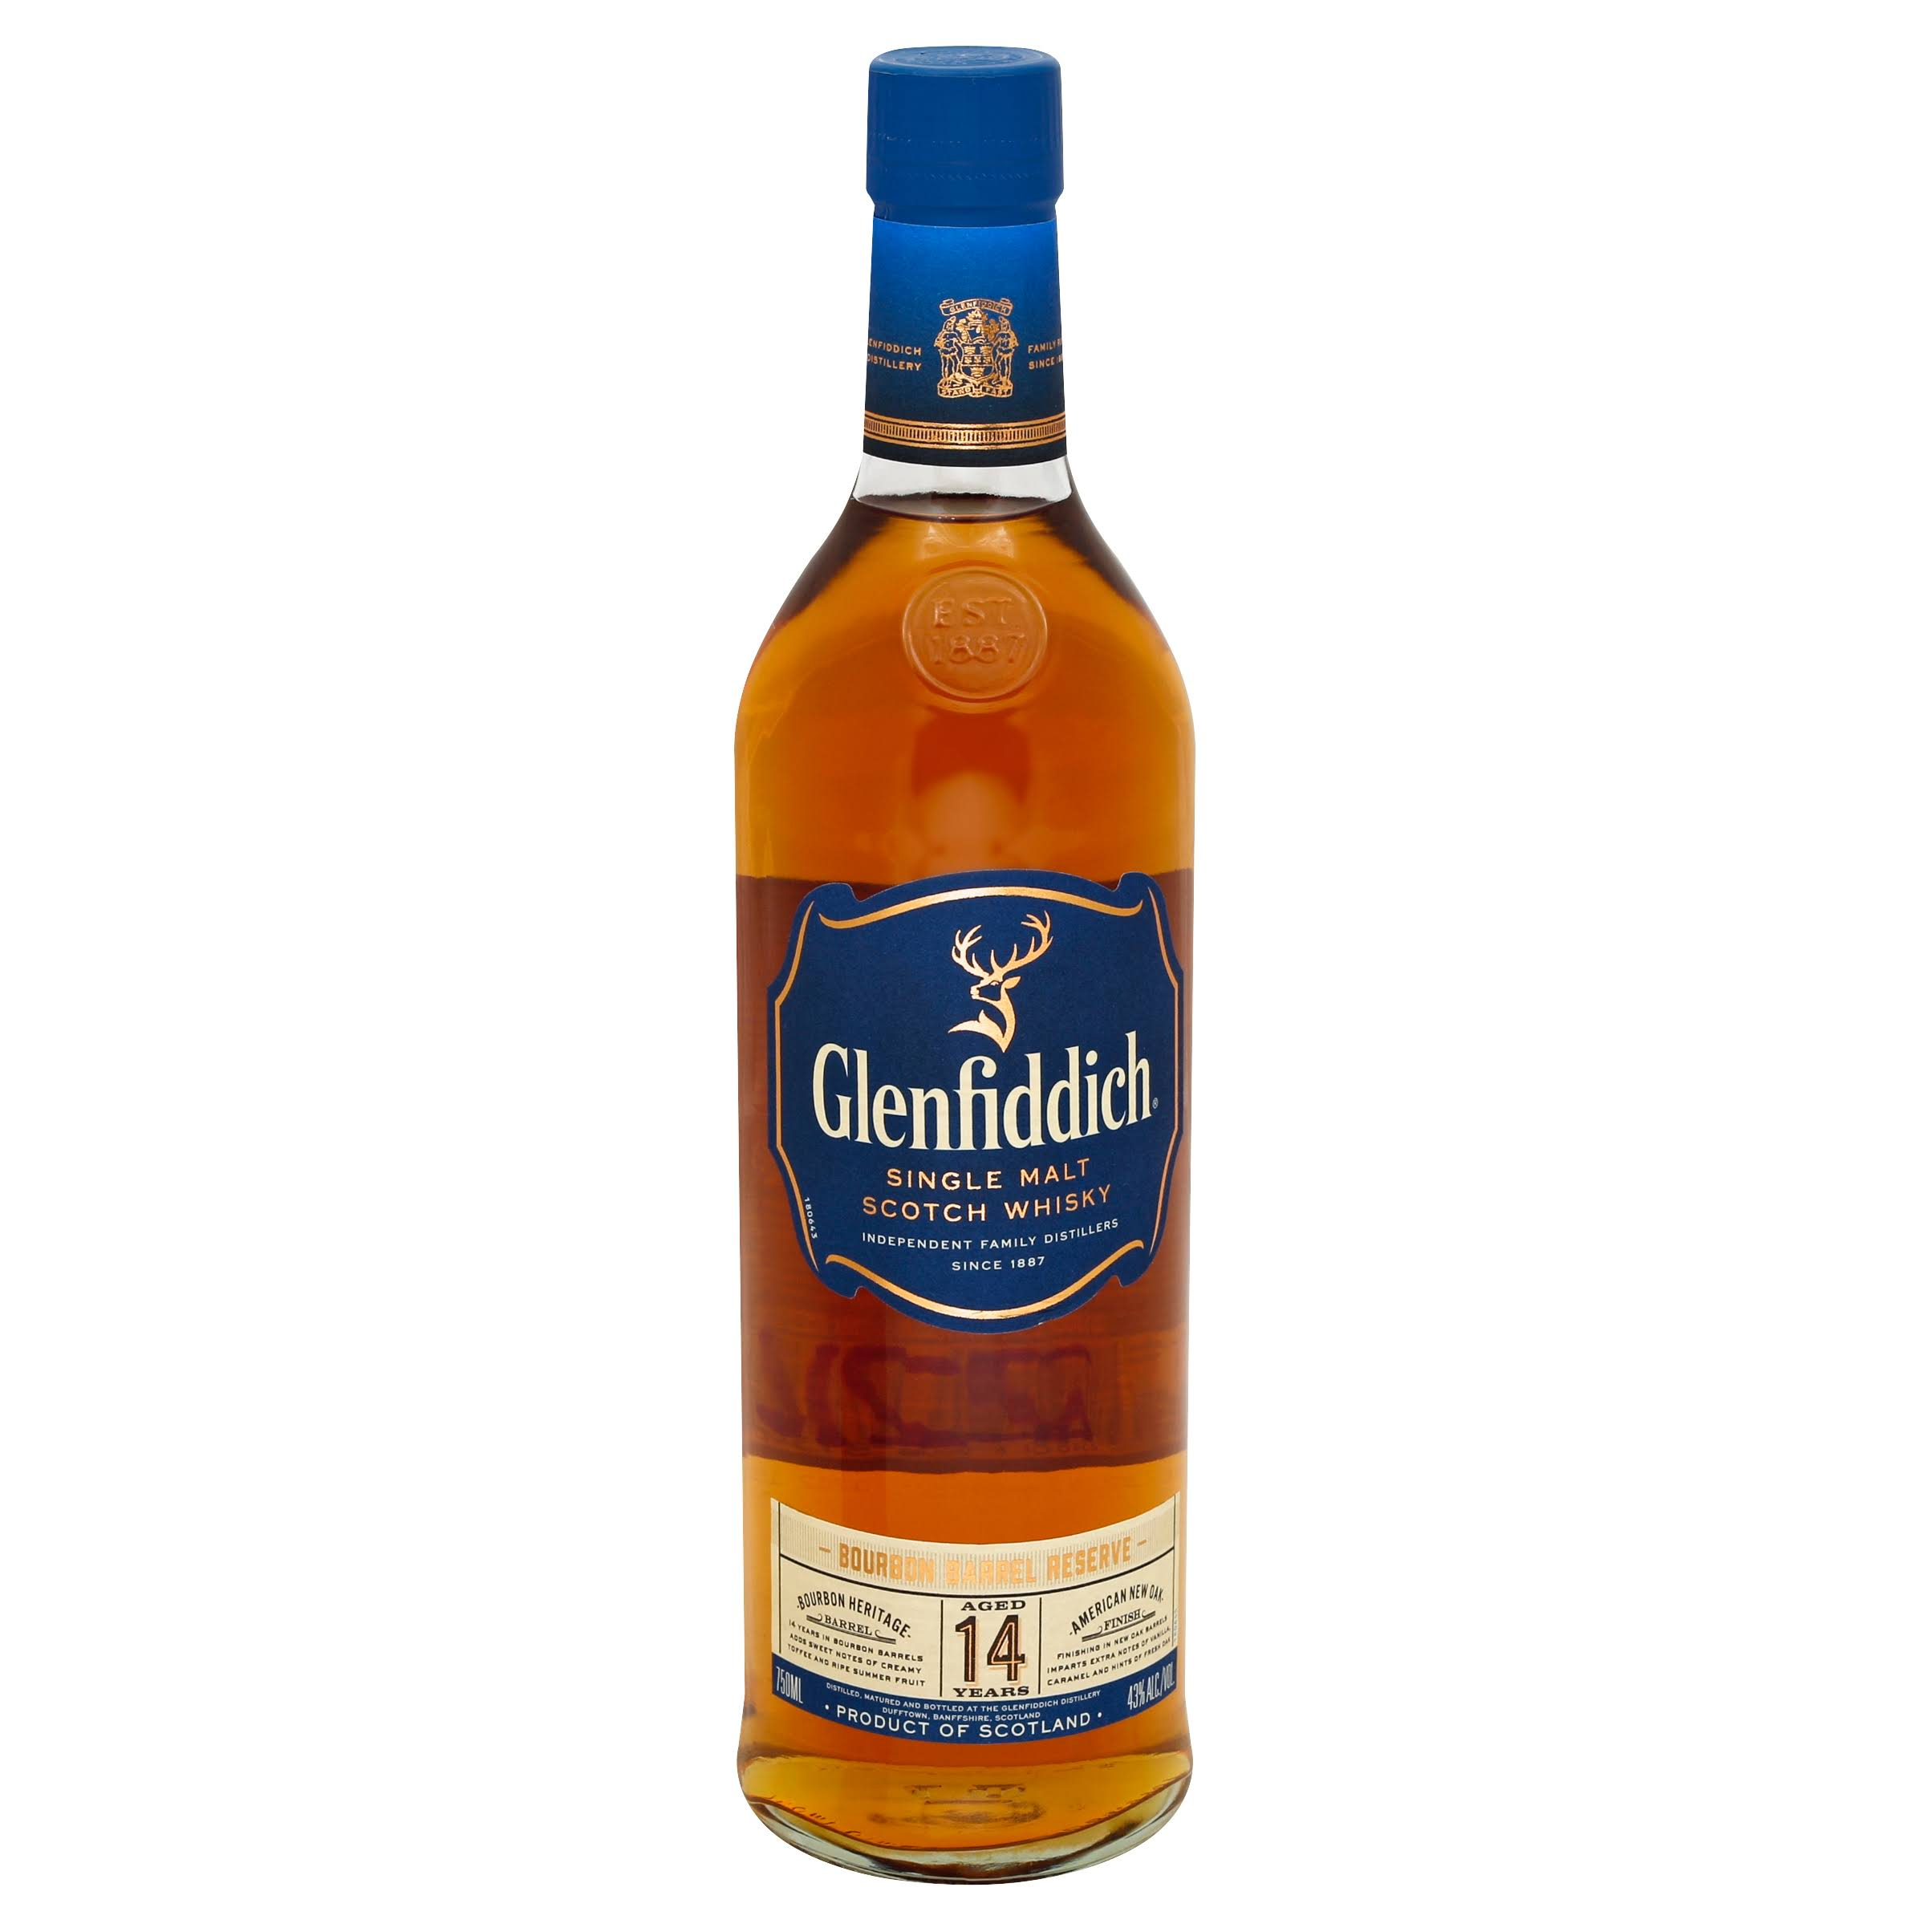 Glenfiddich 14 Year Old Bourbon Reserve Single Malt Scotch Whisky - 750 ml bottle